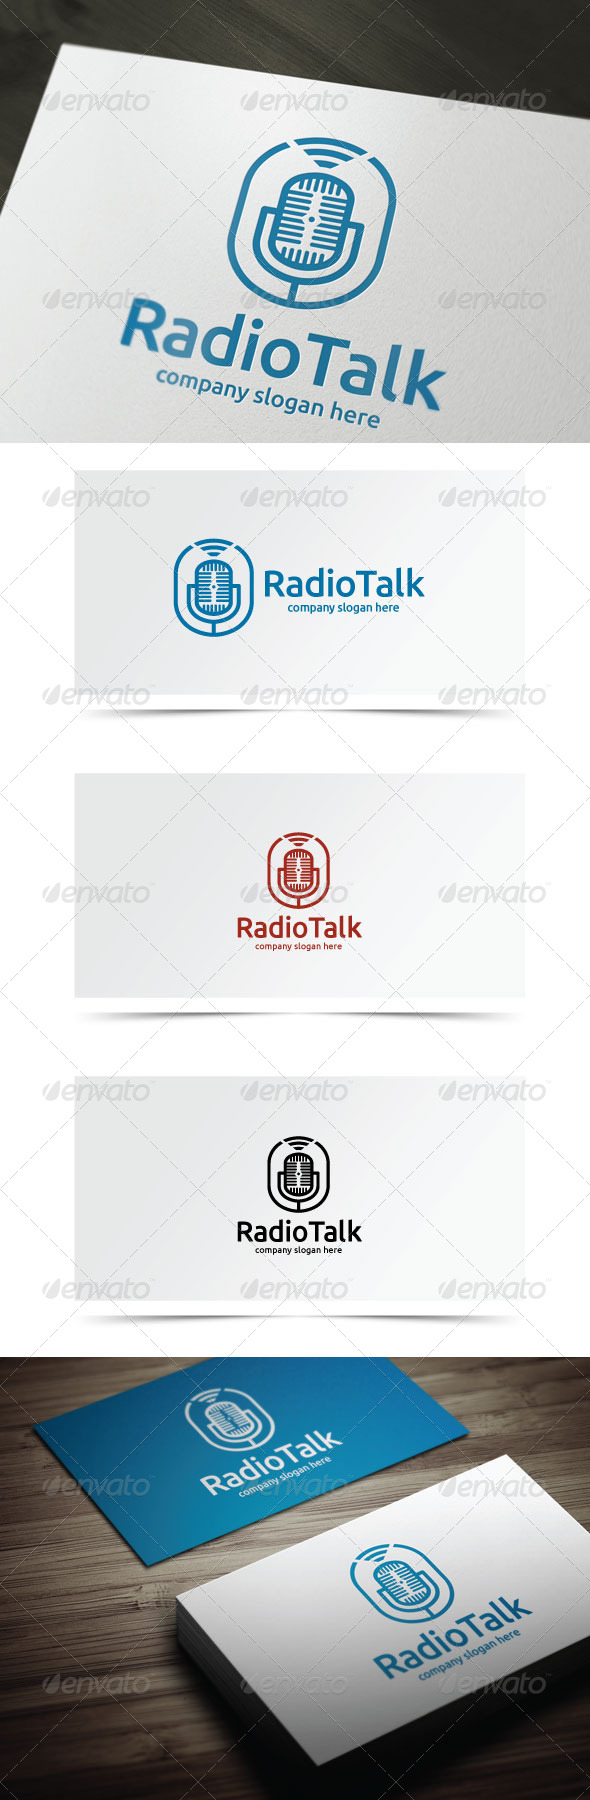 GraphicRiver Radio Talk 8148227